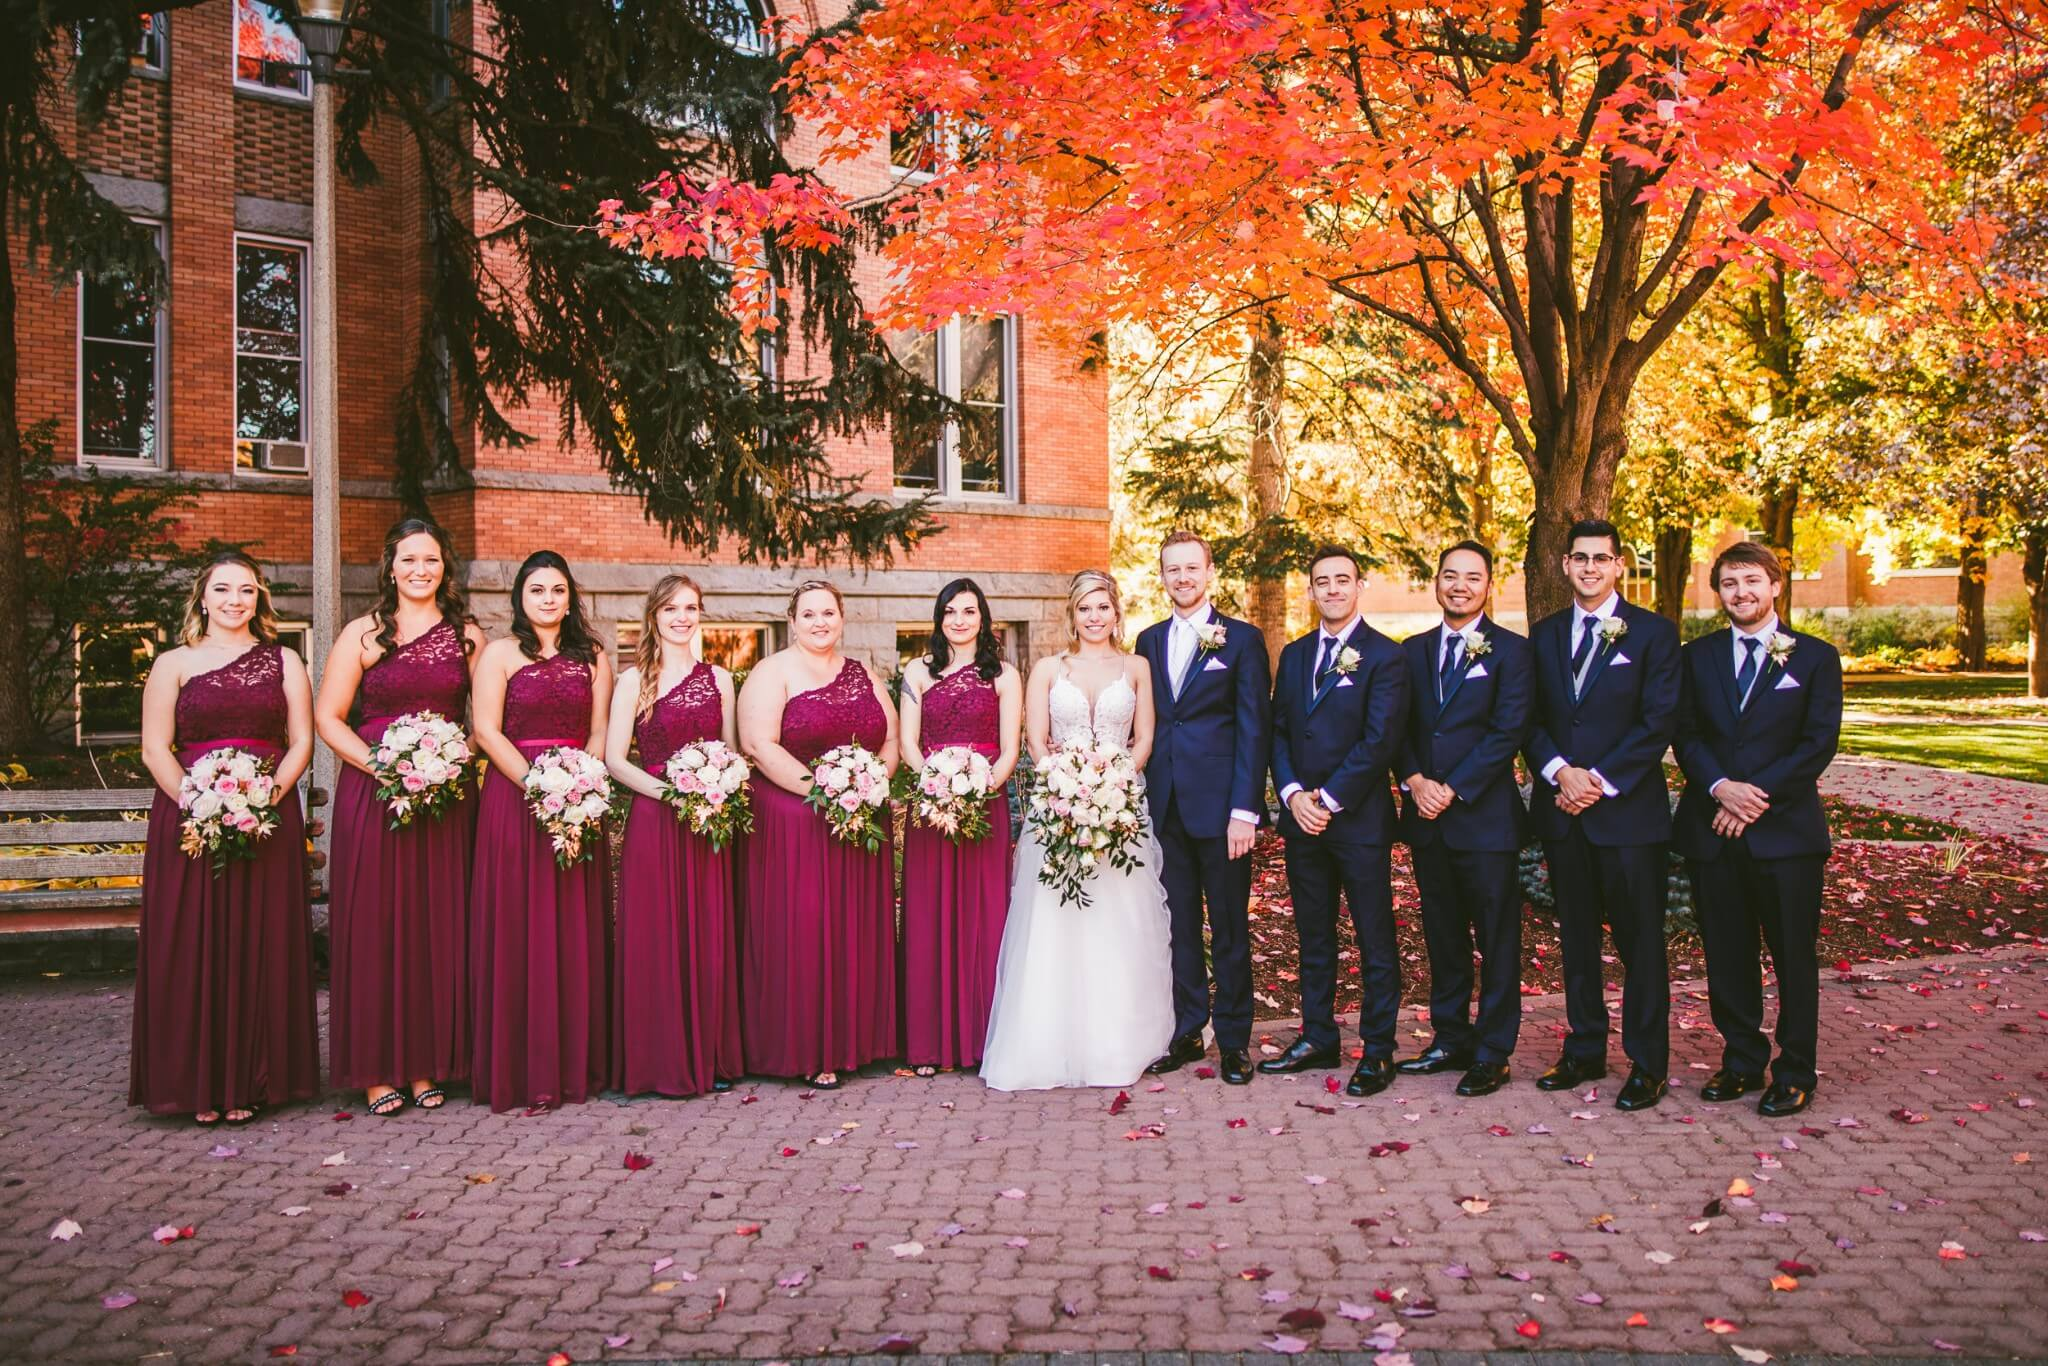 Spokane and Coeur d'Alene Wedding by Bill Weisgerber Photography 4 (5).jpg